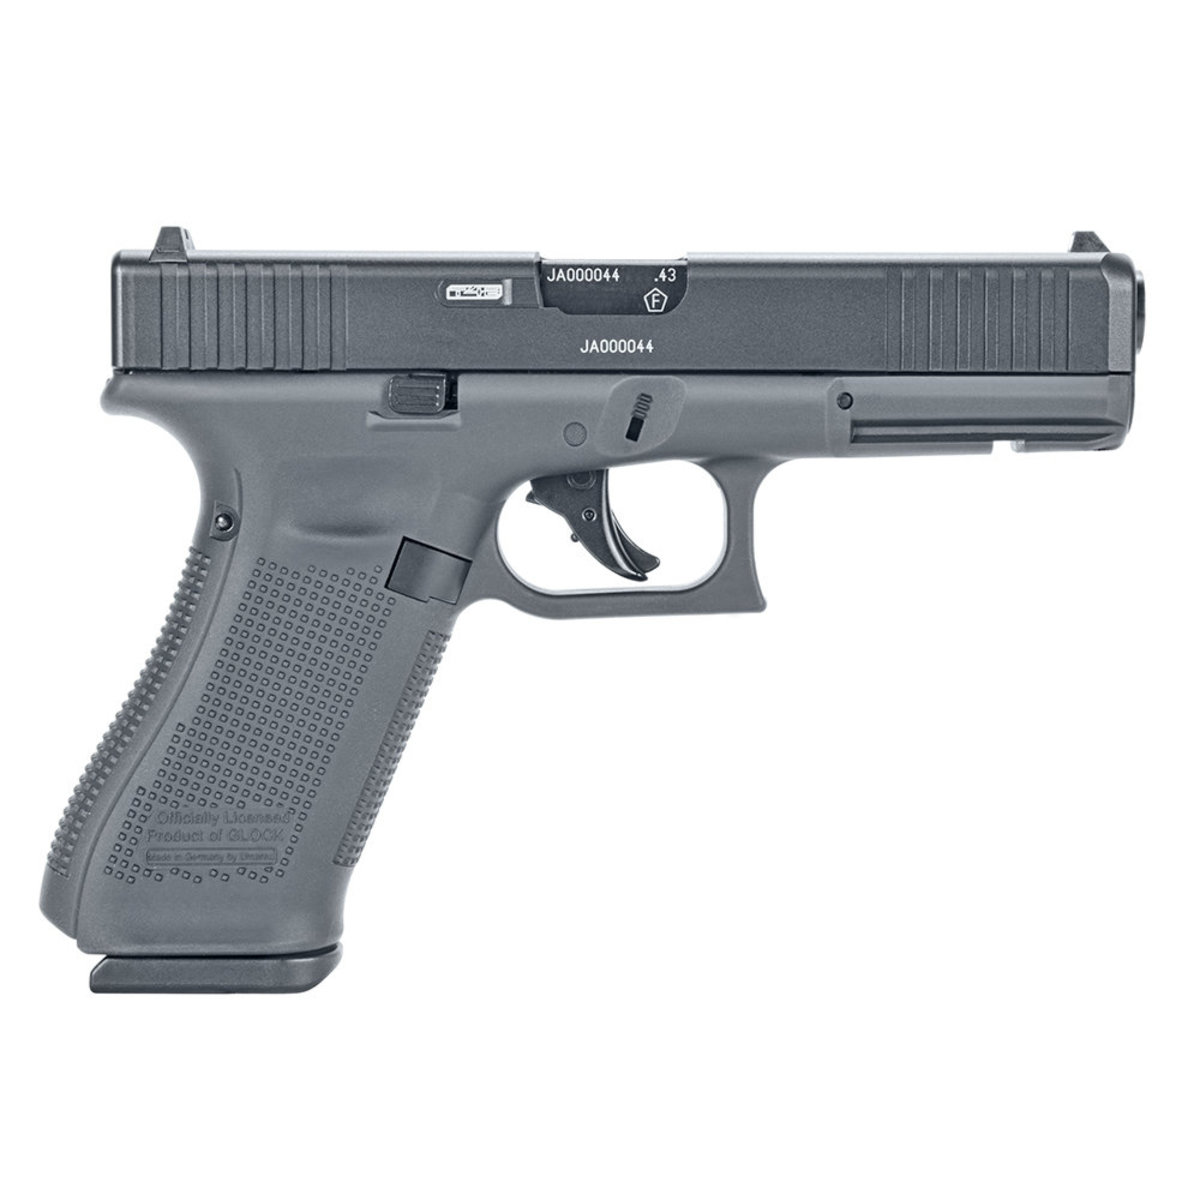 View larger image of Umarex GLOCK G17 GEN5 T4E Paintball Pistol (First Edition)